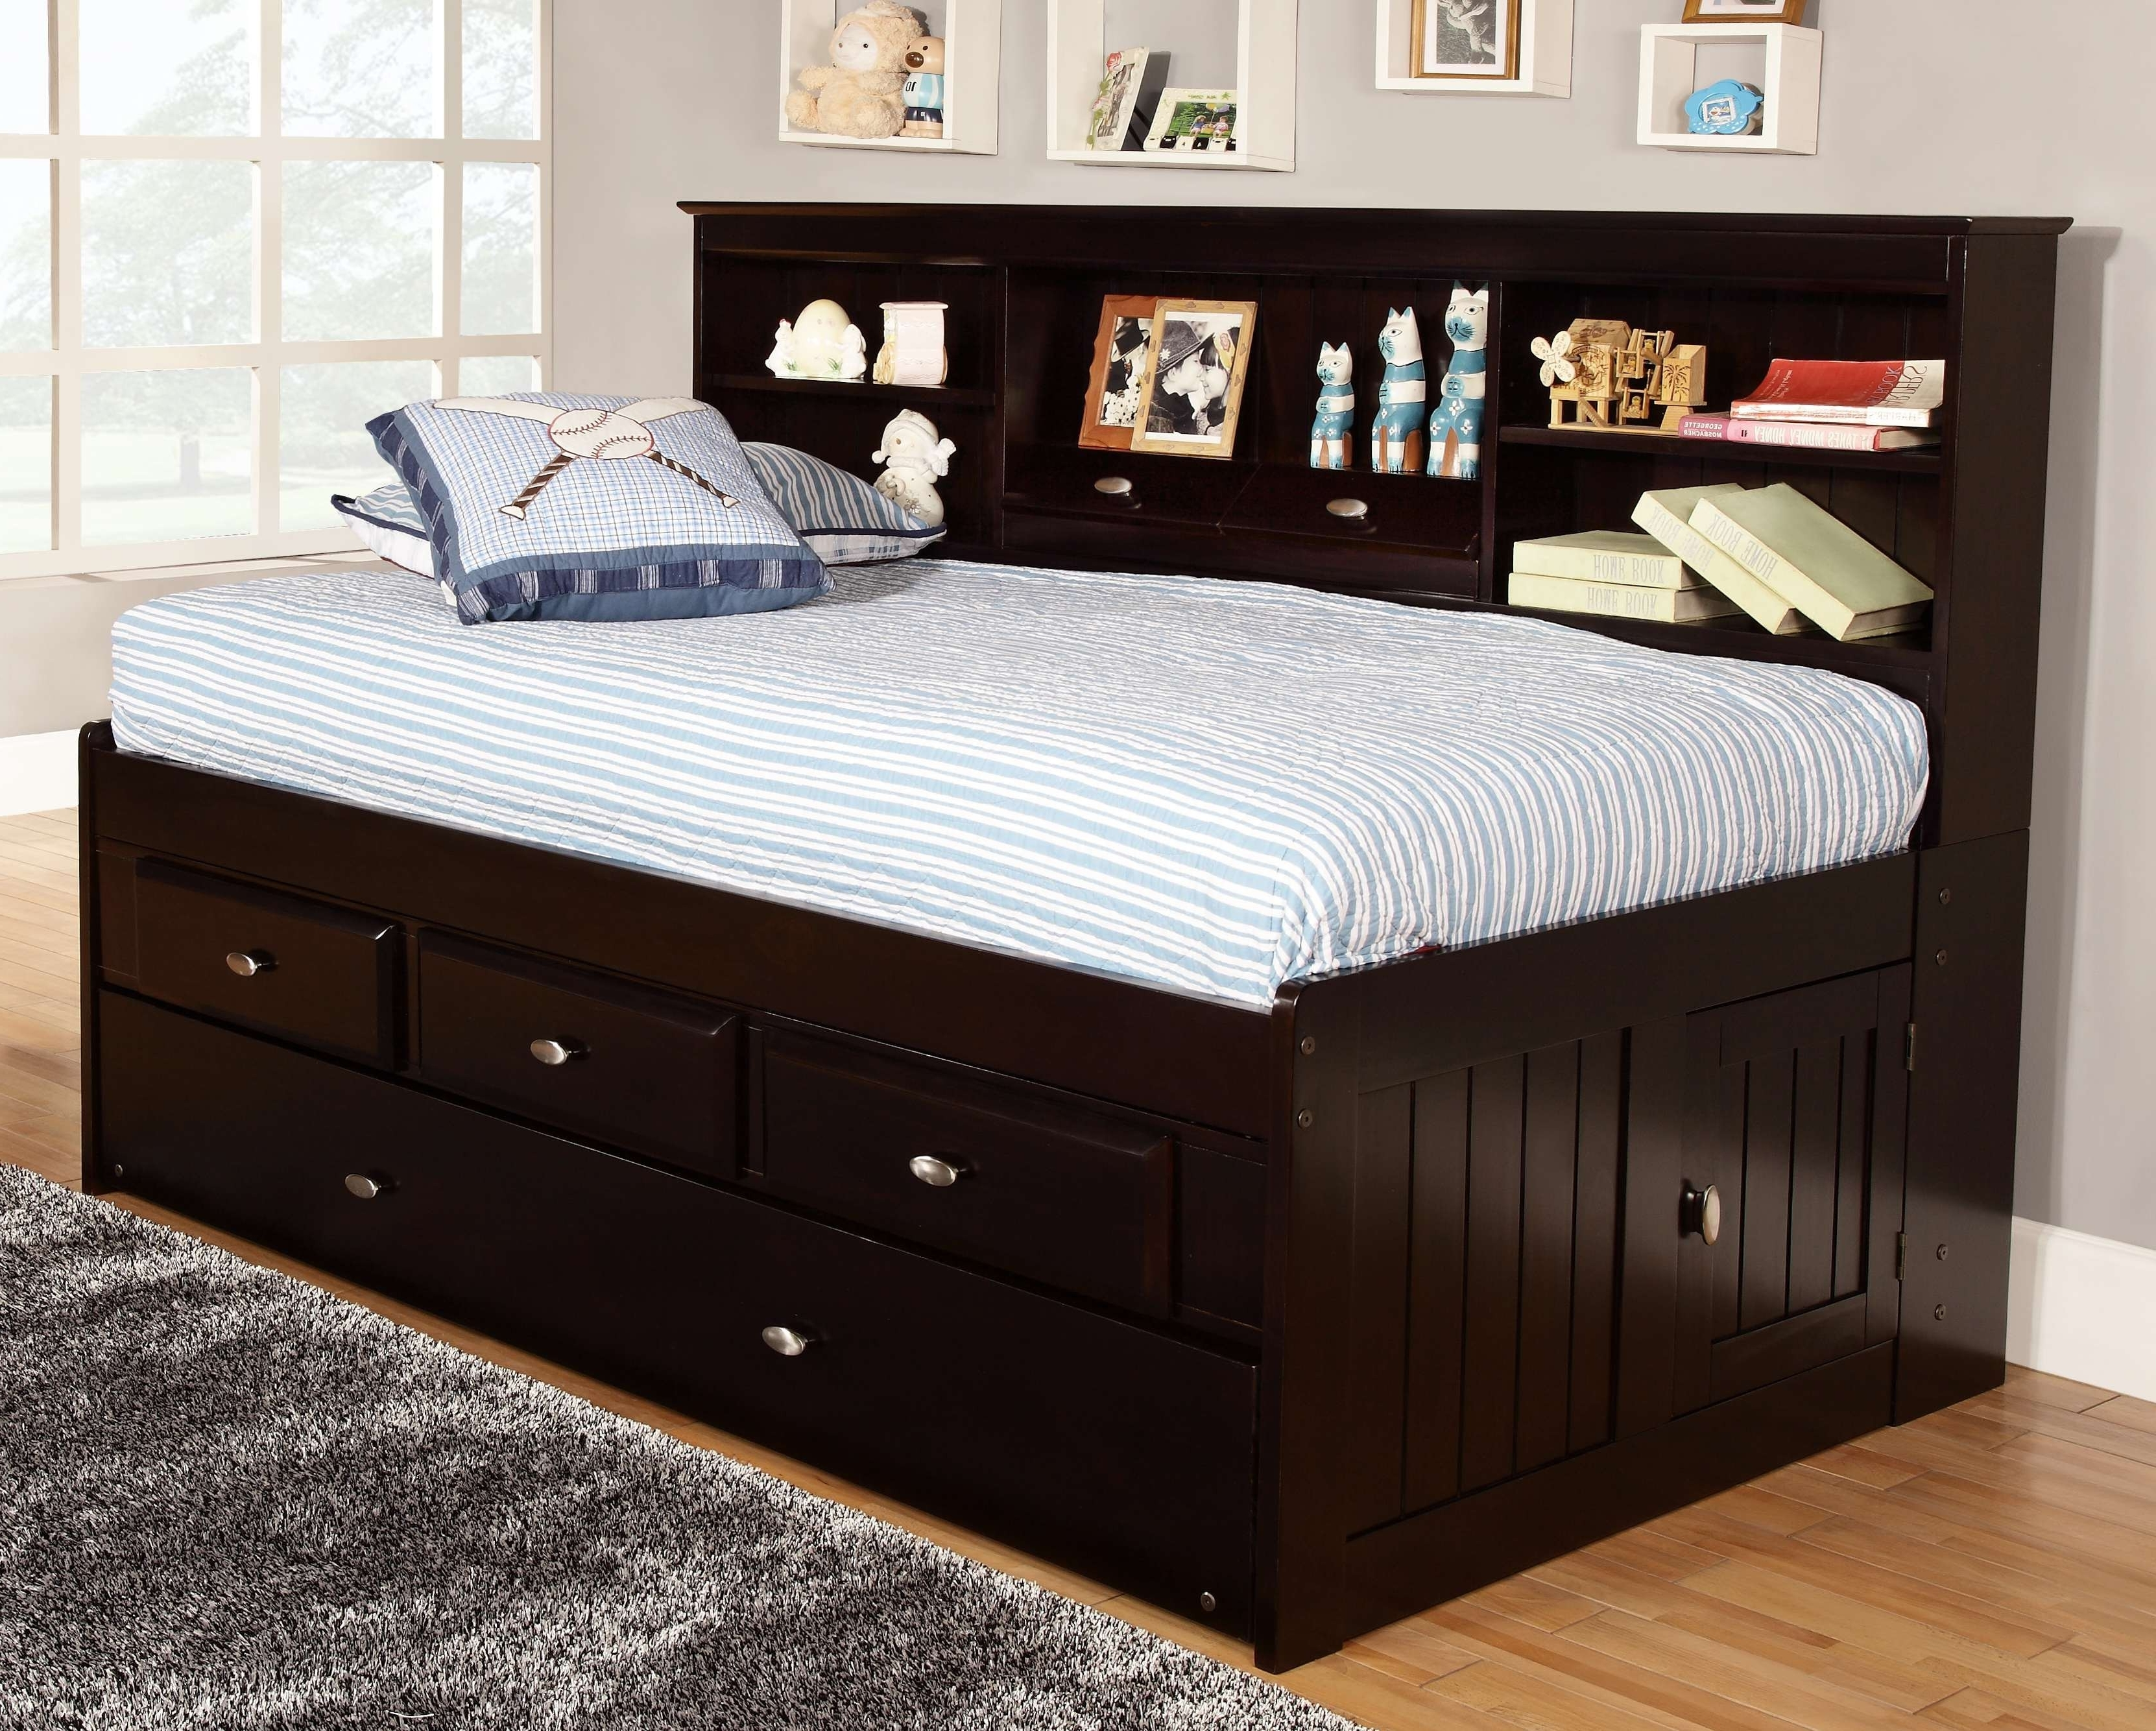 Best And Newest Twin Bed Bookcases With Regard To These Classy And Stylish Twin Captain Beds With Storage Are The (View 3 of 15)